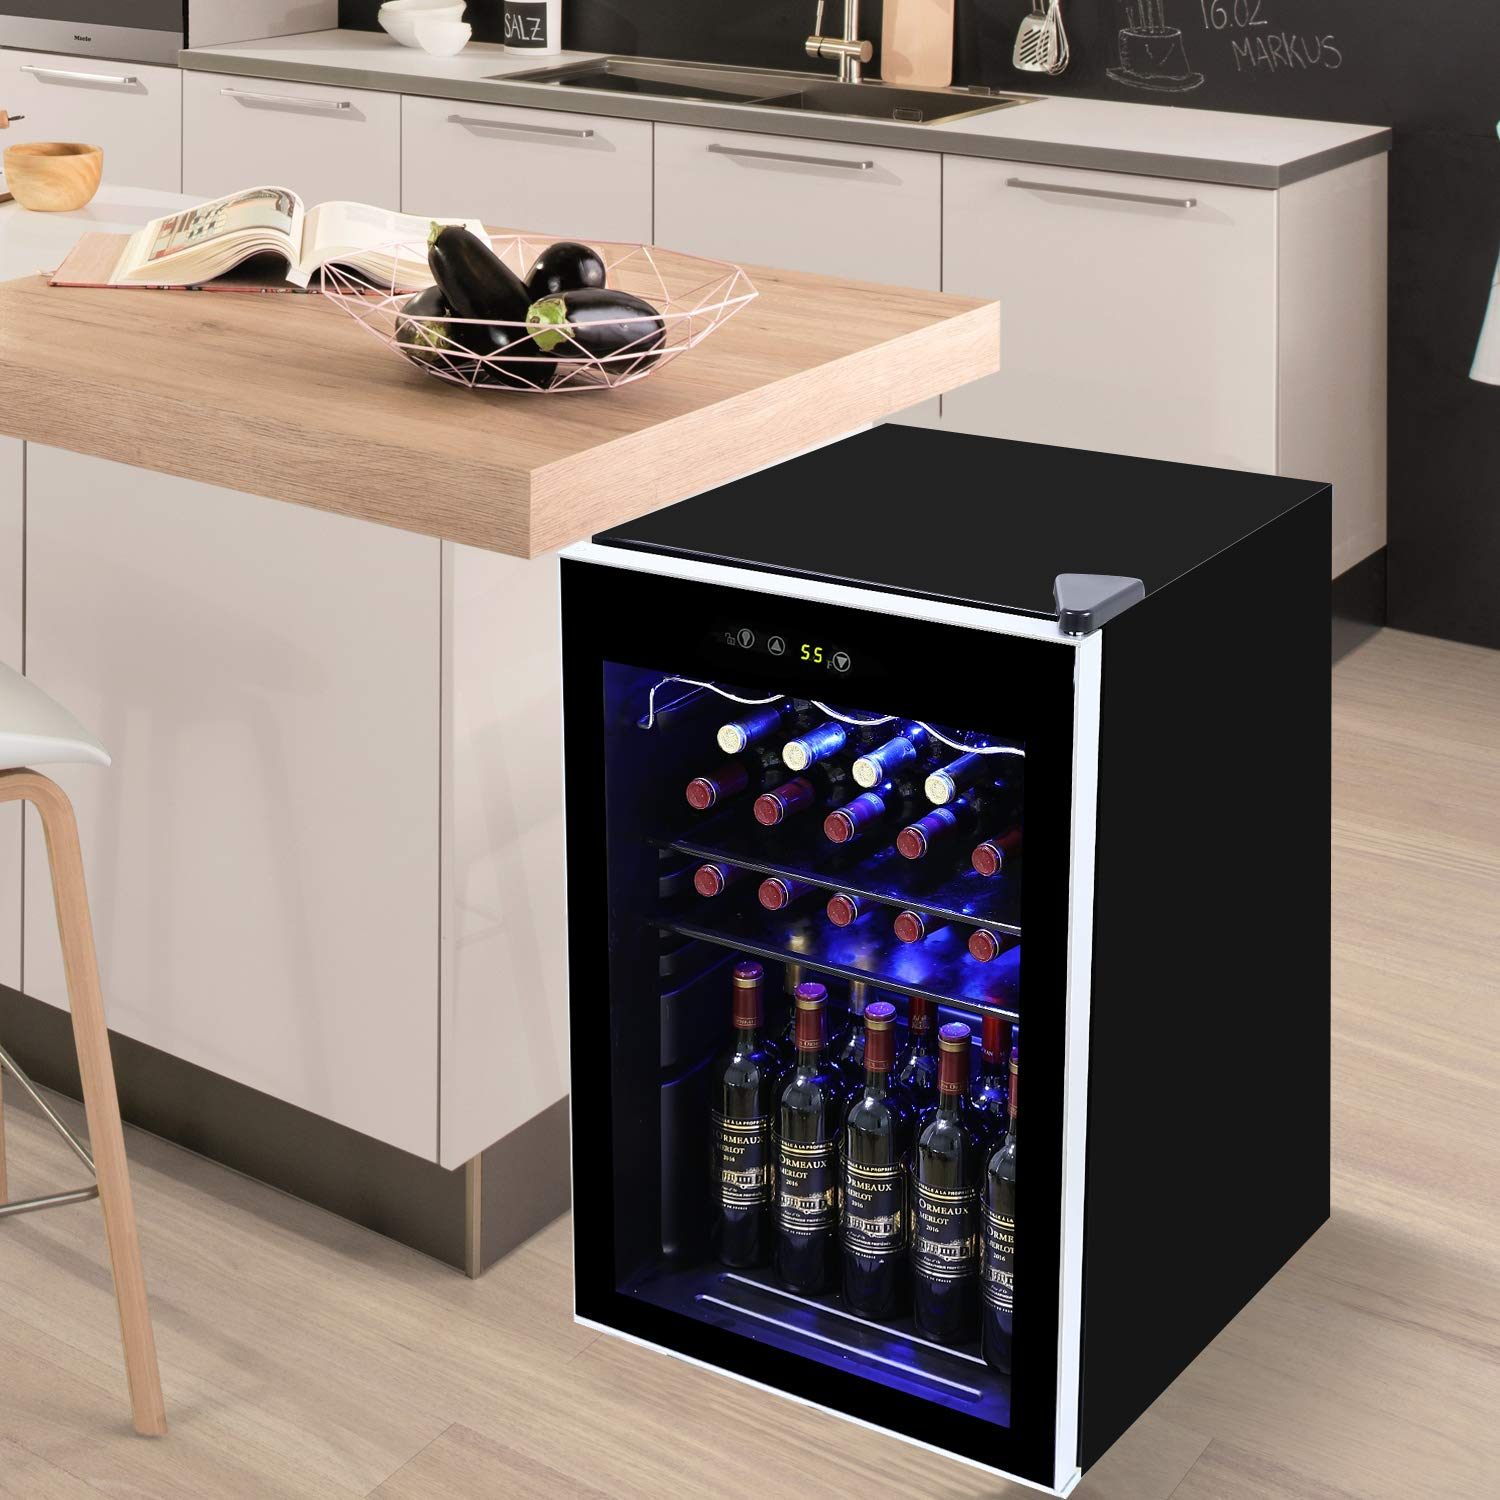 Quiet Wine Refrigerator with UV Protection Glass Door,Compressor Refrigeration for Counter Top/ 37 Bottles Freestanding Single Zone Fridge and Cellar Chiller Tavata Wine Cooler